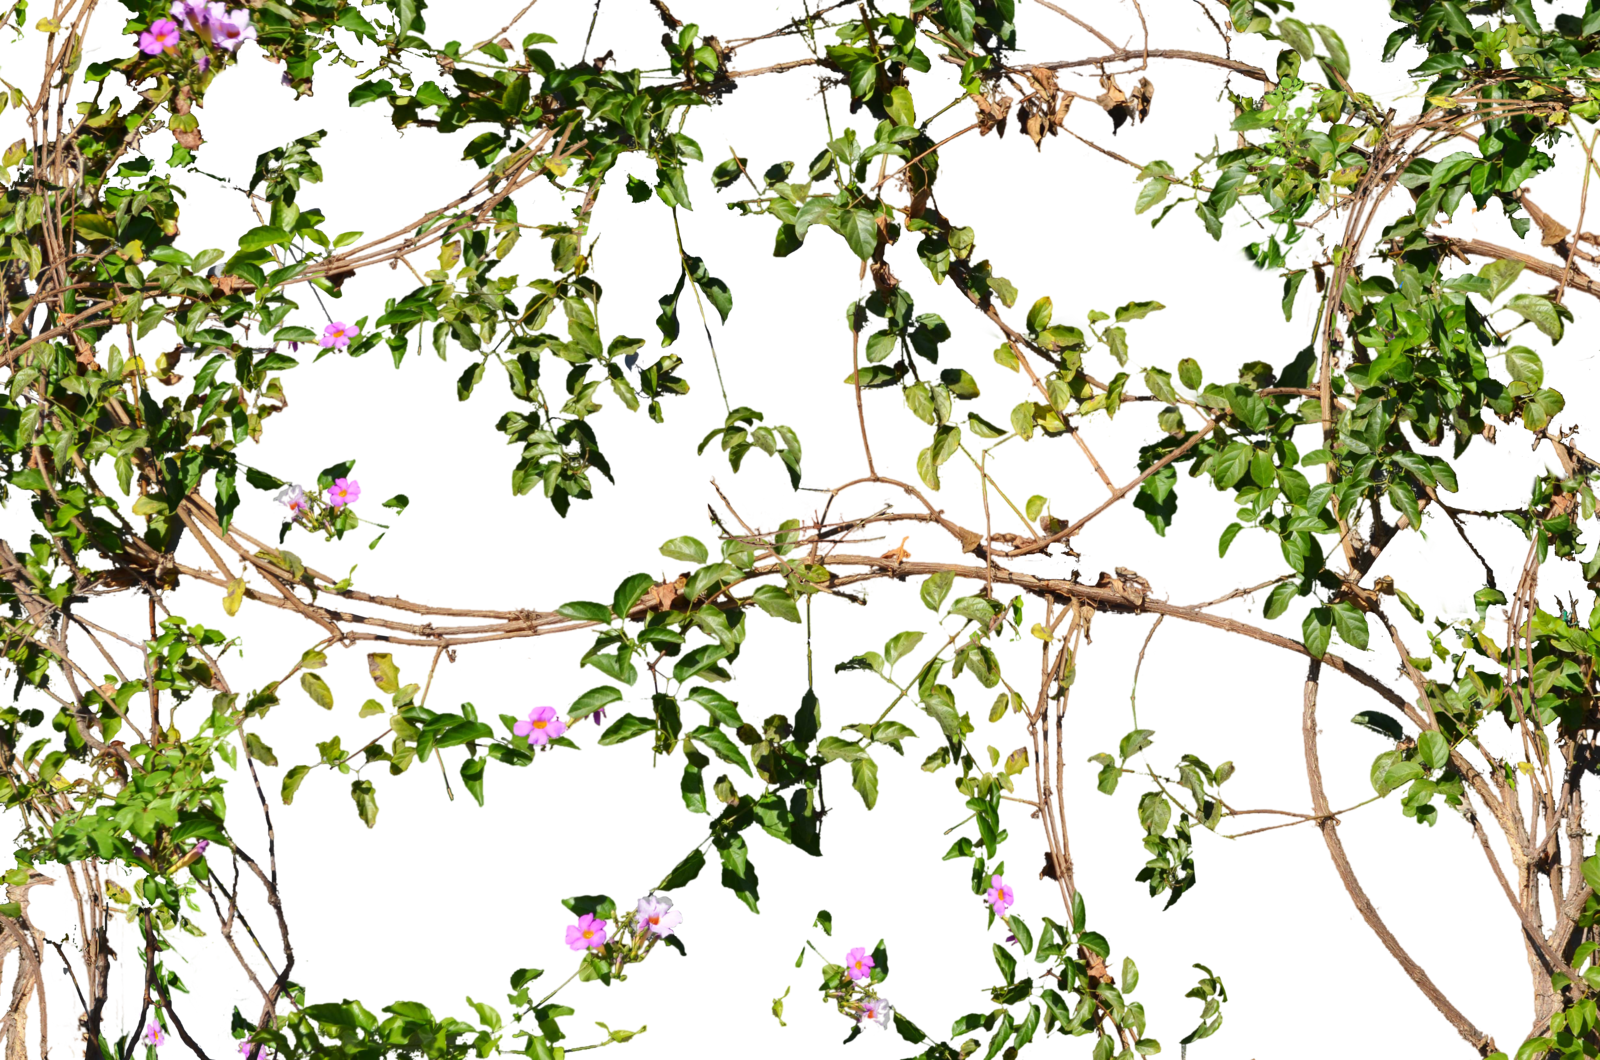 Green wall texture png. Vines flowers growing on